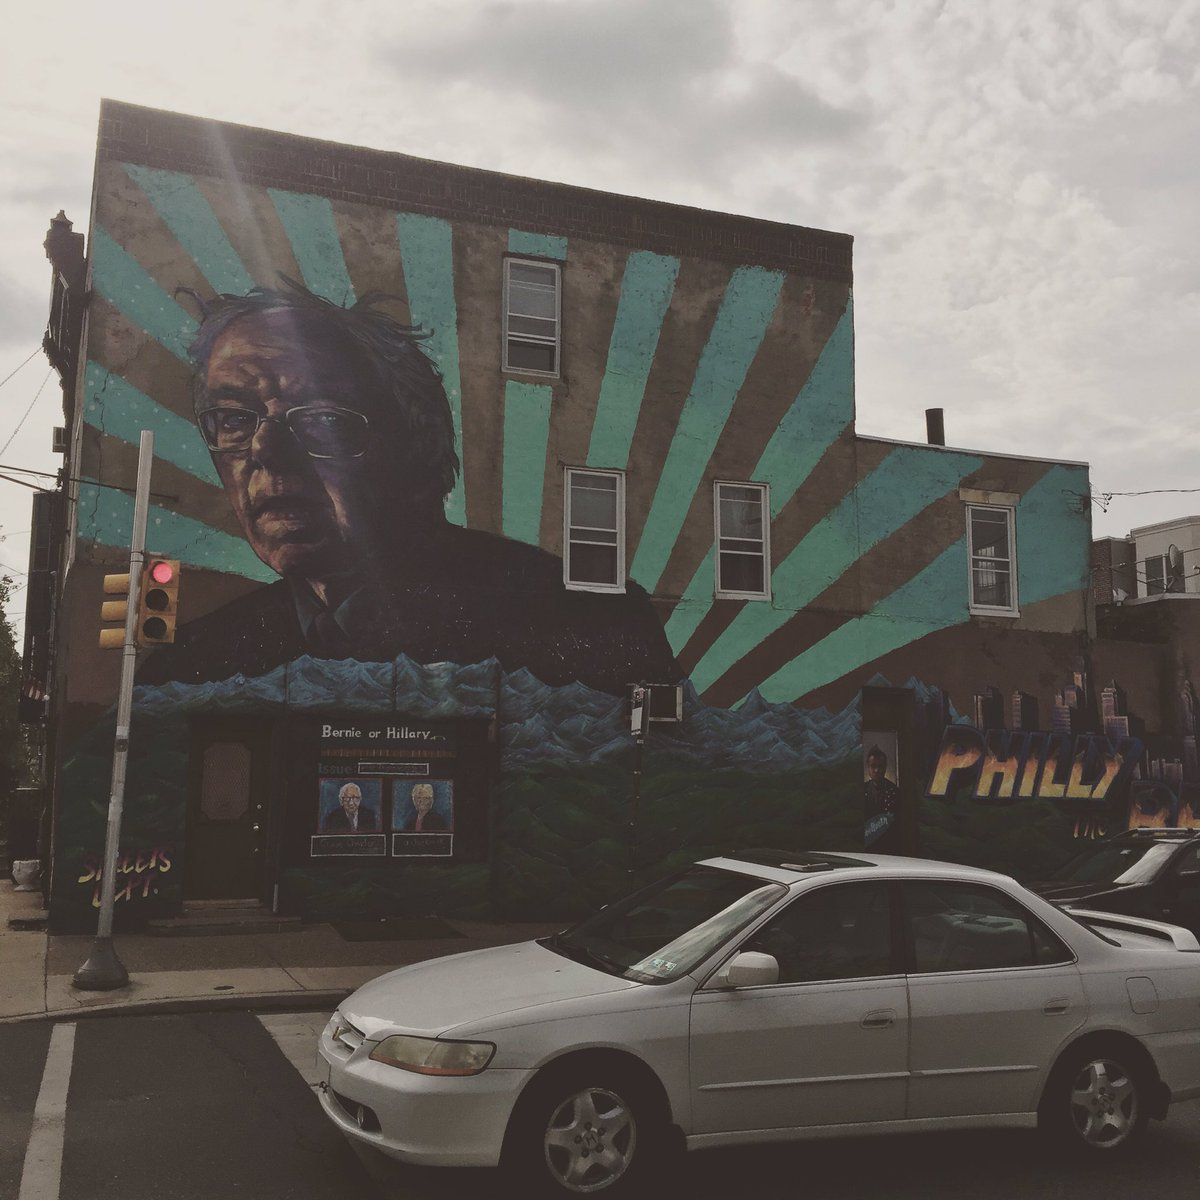 Philly art https://t.co/i96gLd63M7